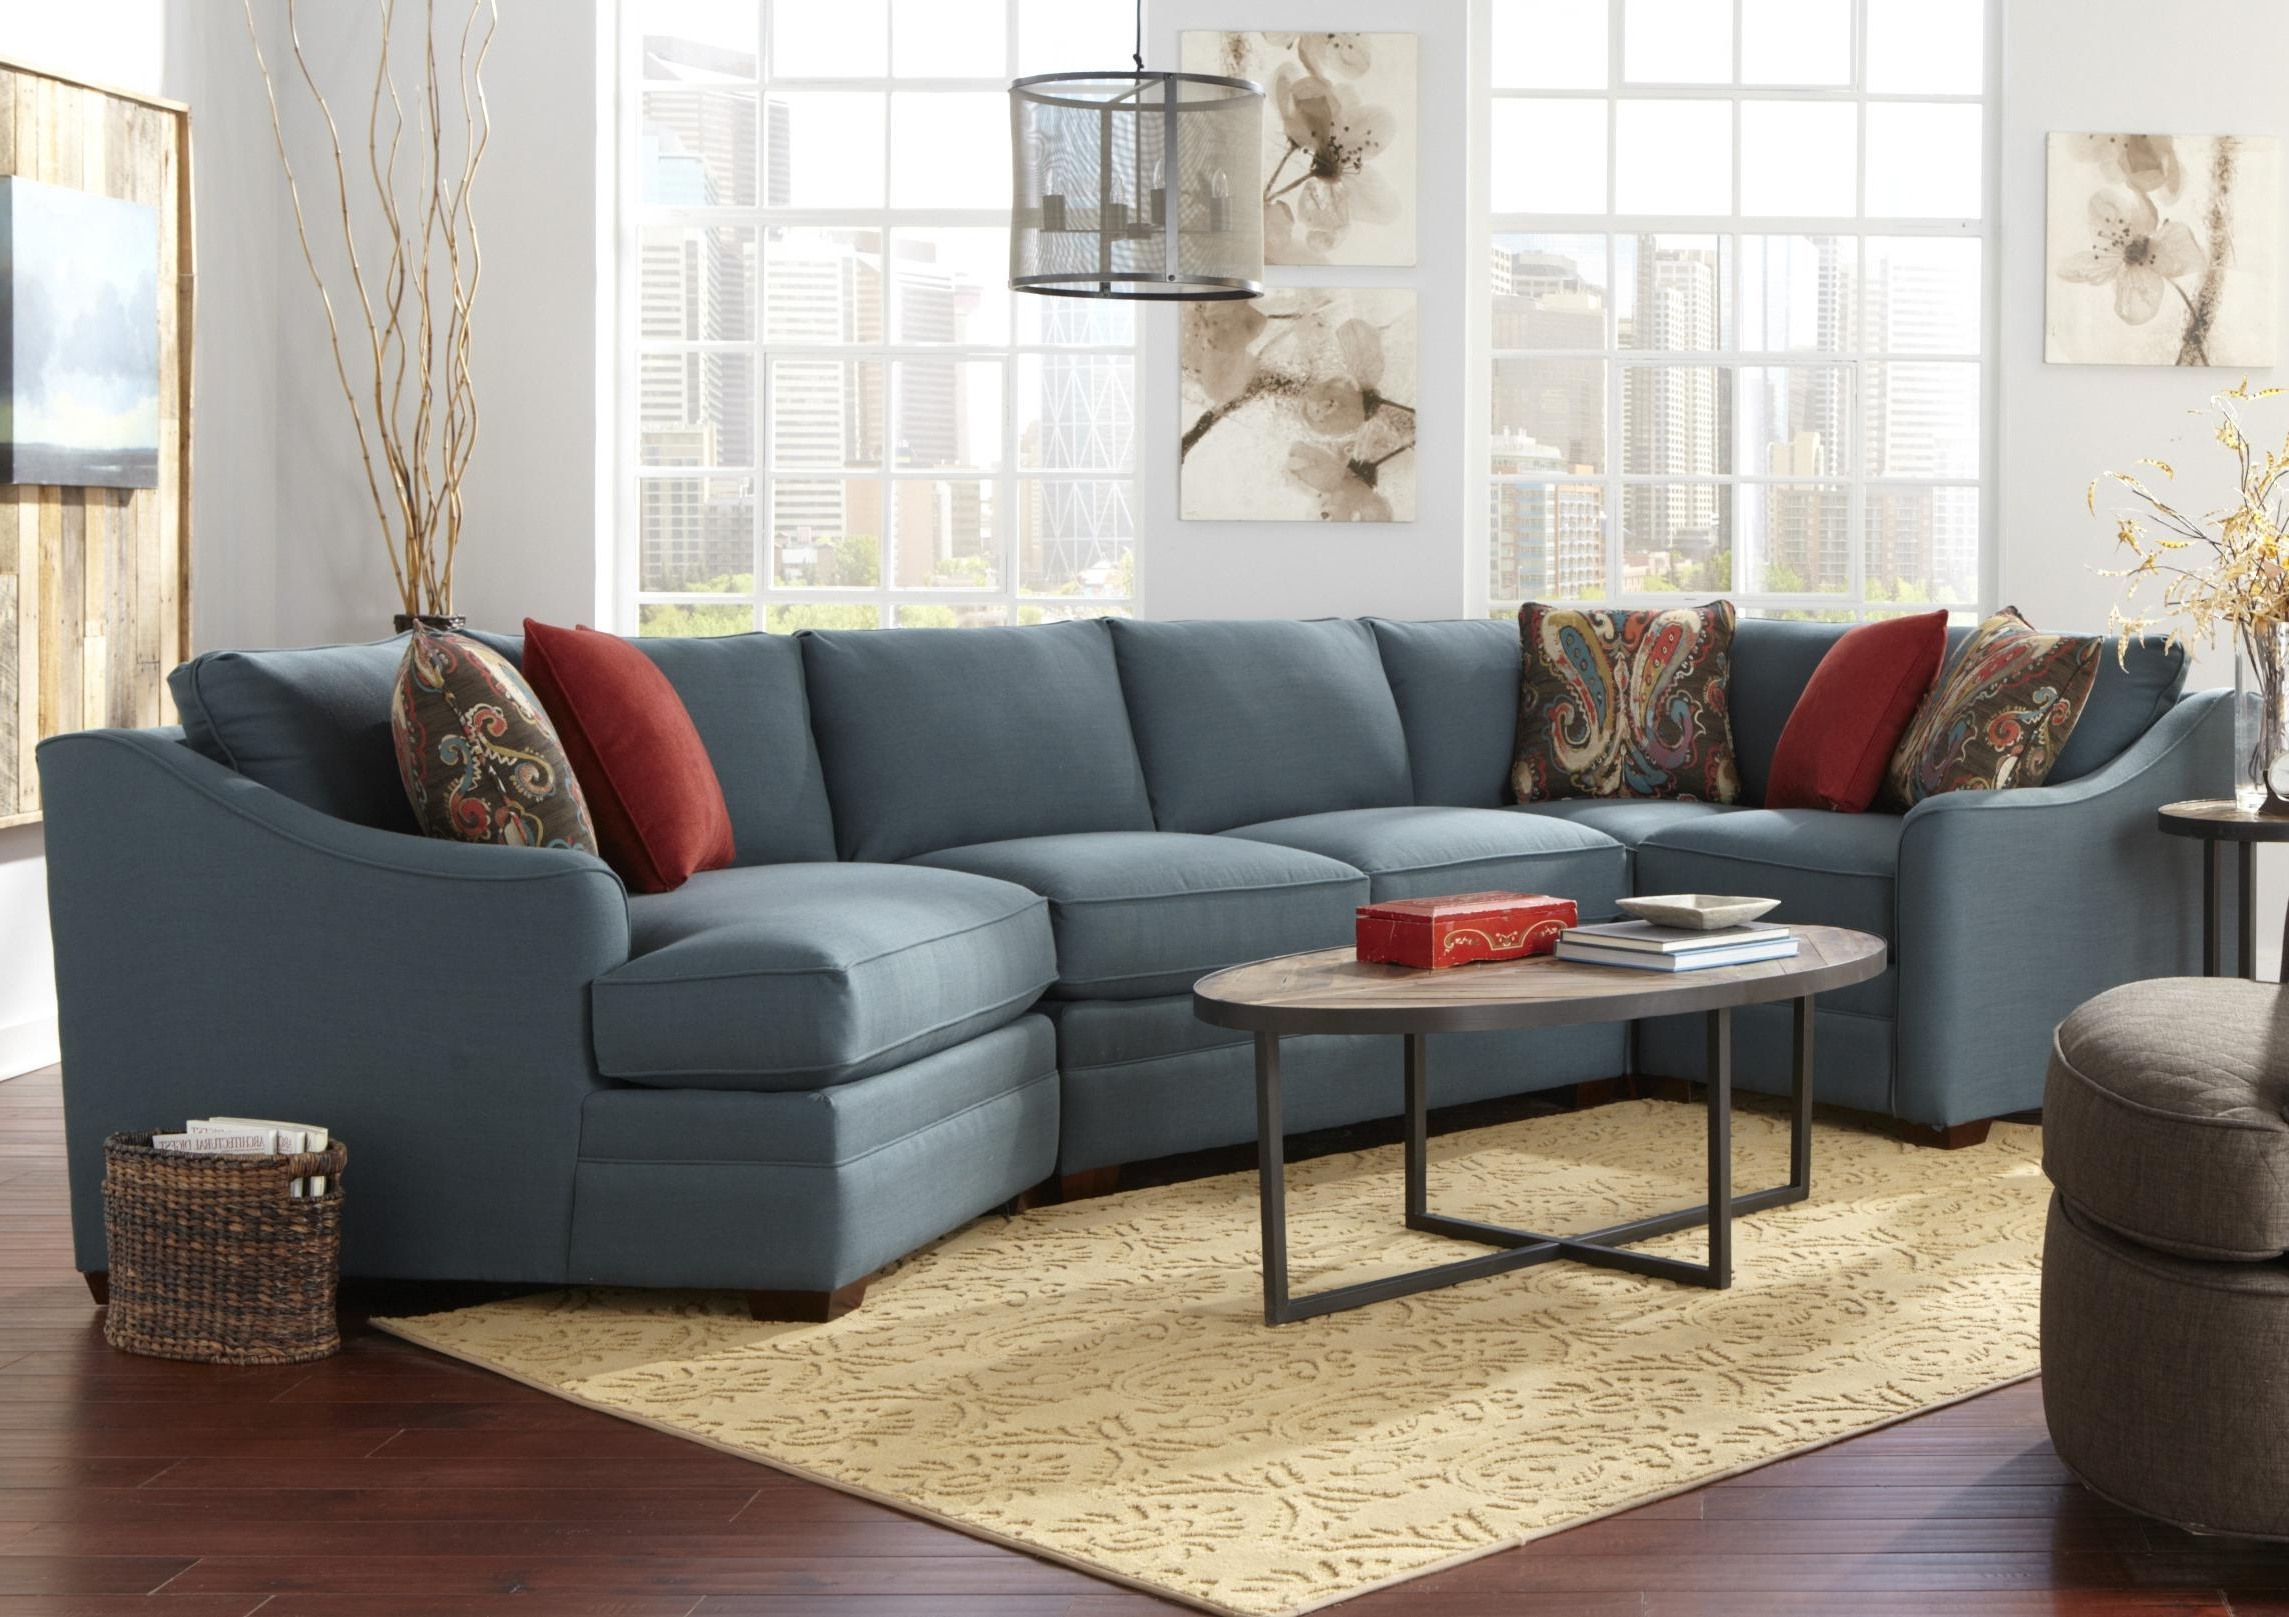 Customizable Sectional Sofas Intended For Popular Craftmaster F9 Custom Collection Four Piece <B>Customizable</b (View 3 of 20)